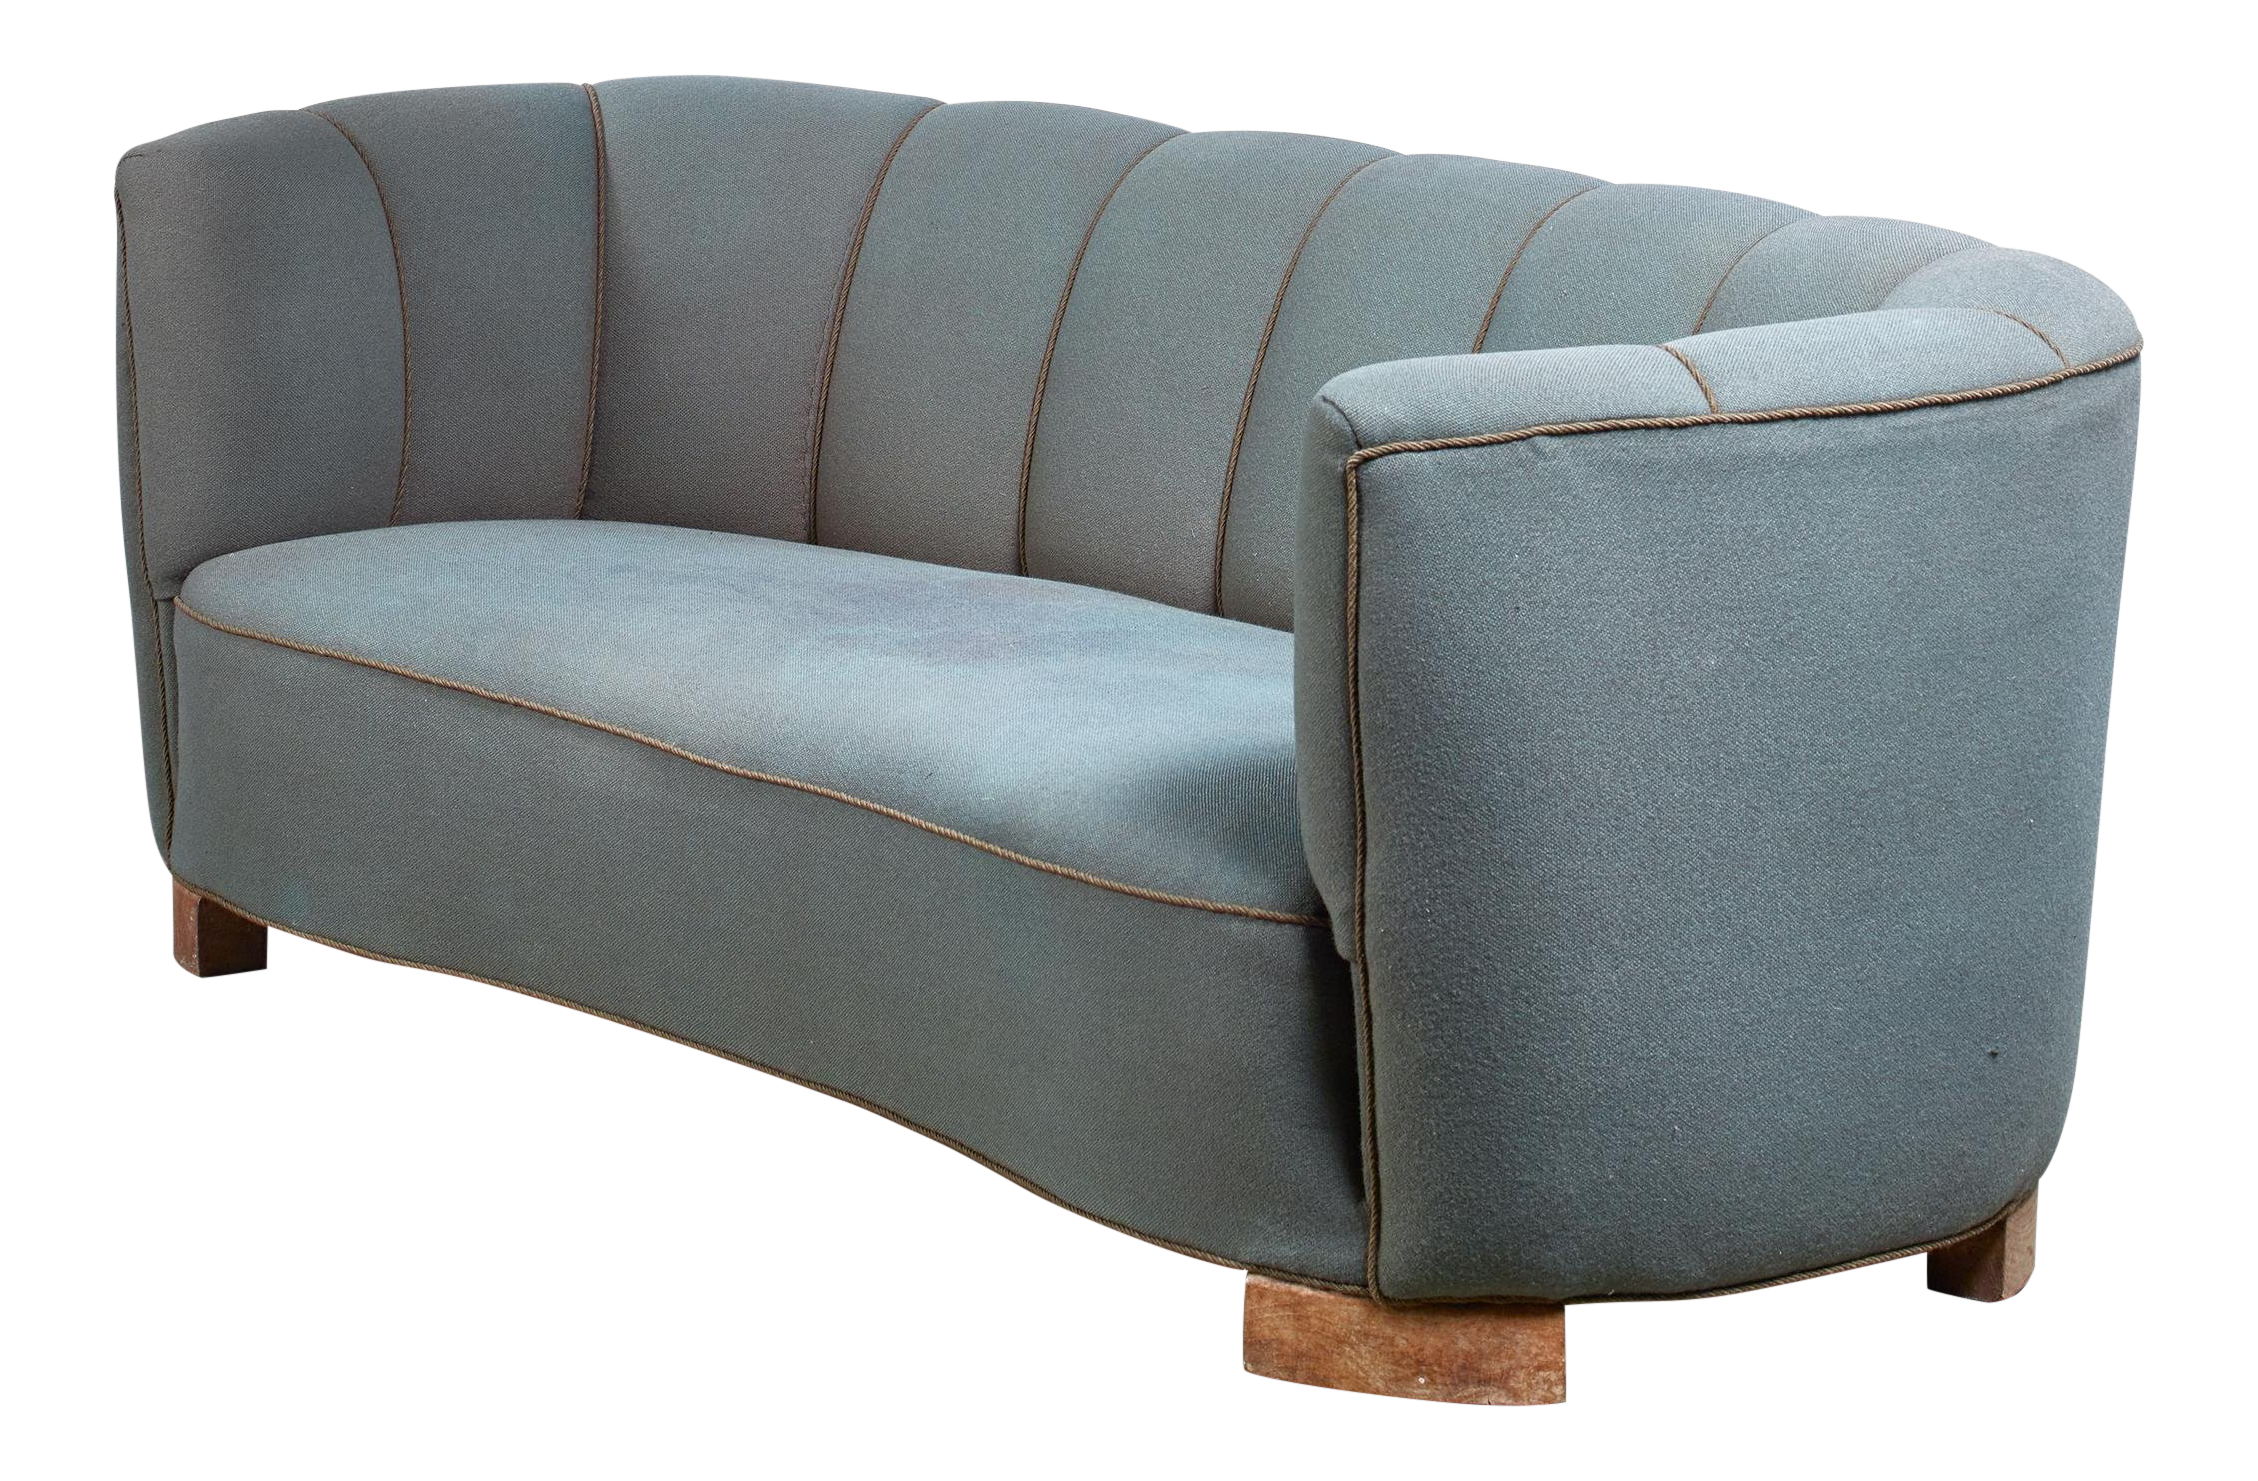 Lovely Large 1940s Danish Sofa With Petrol Upholstery | DECASO